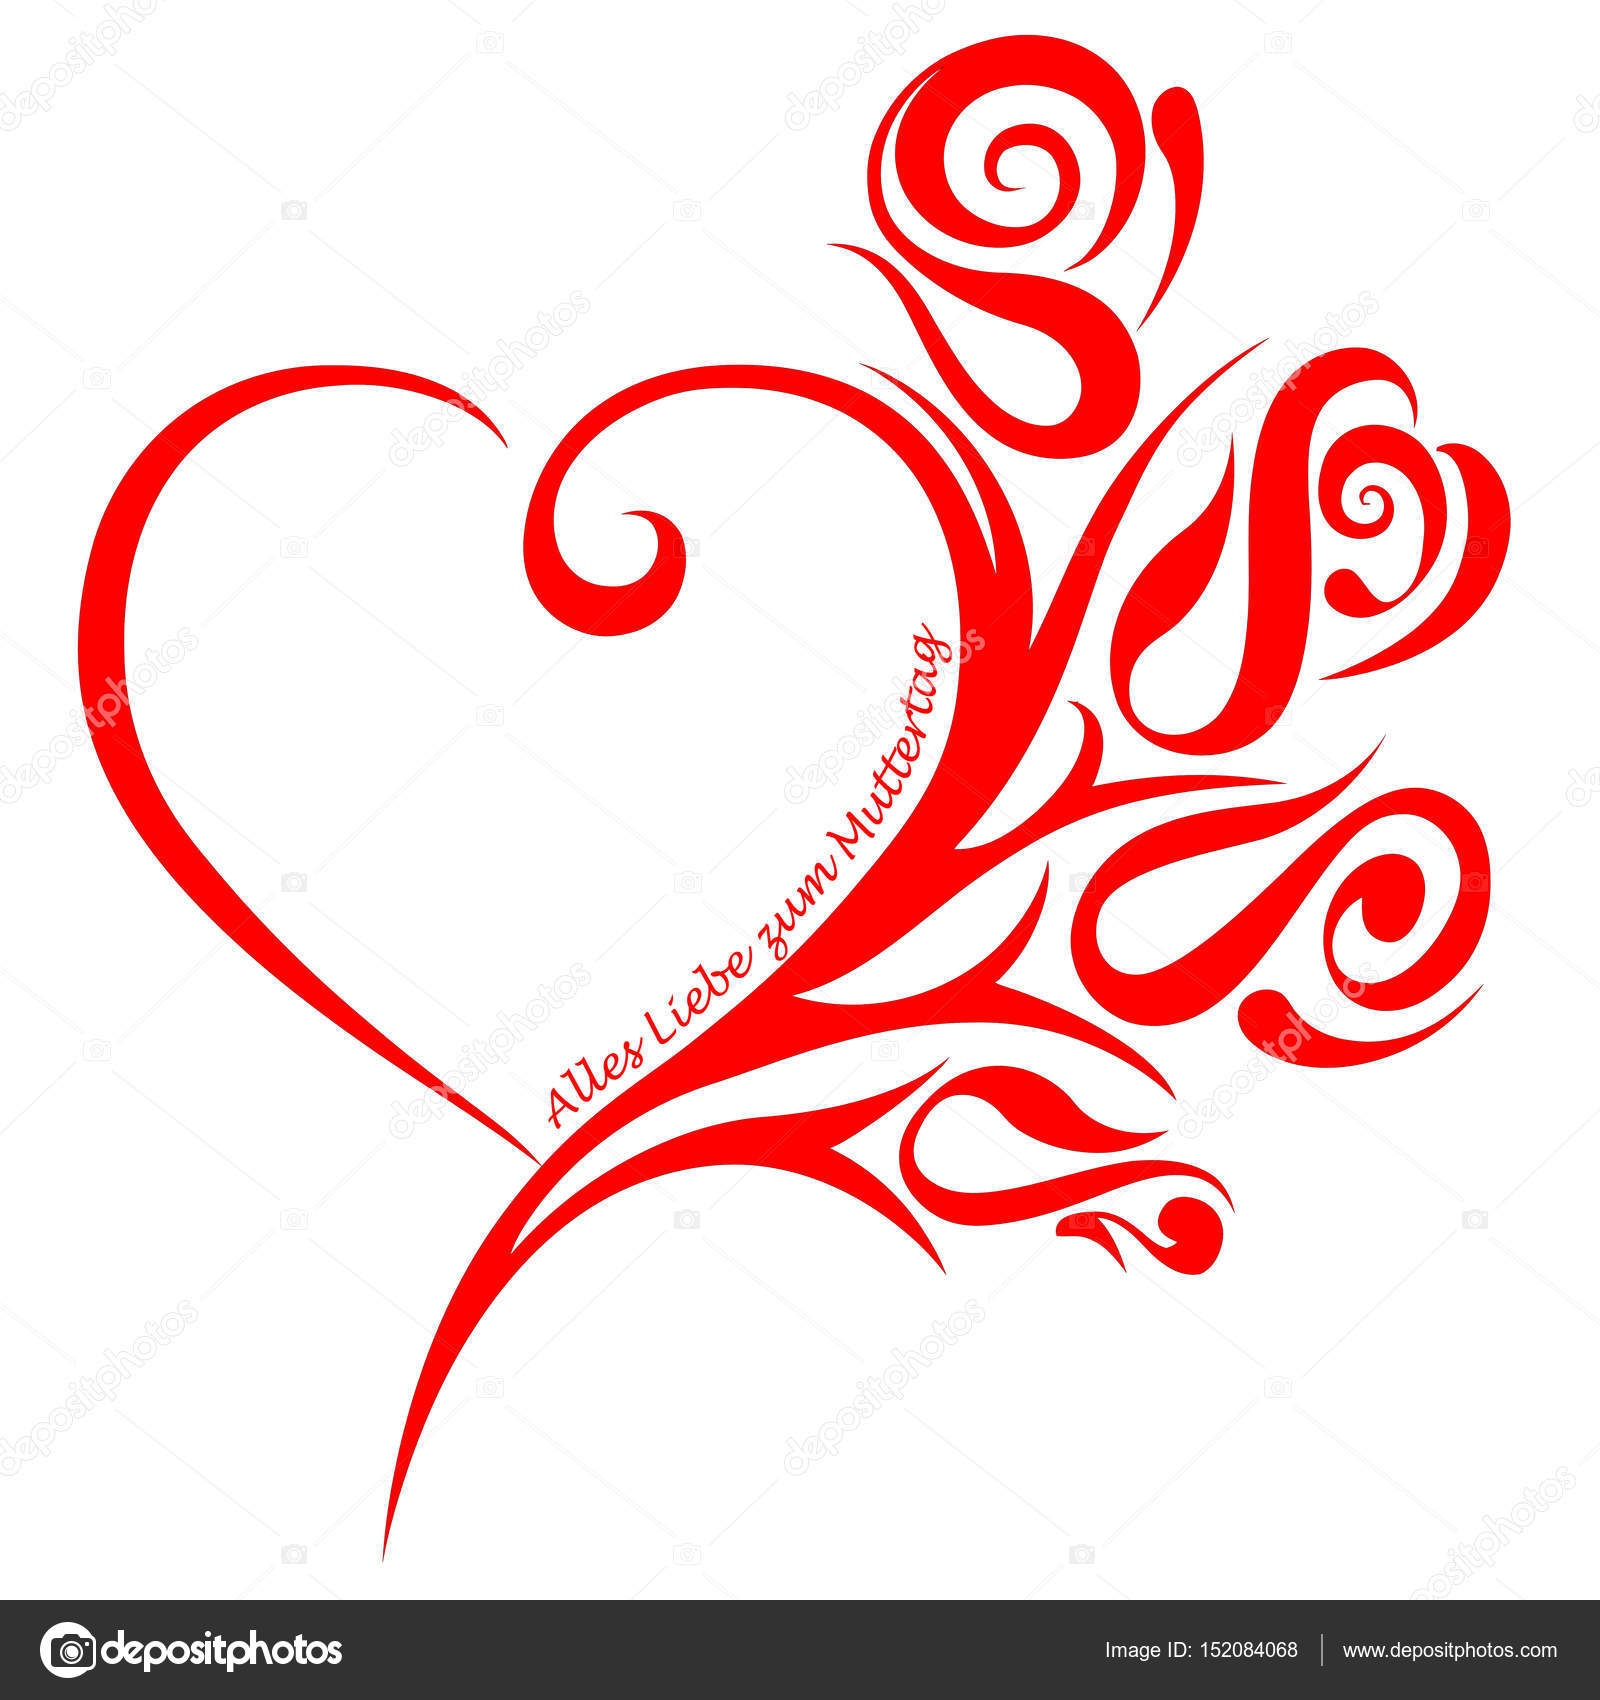 131 1310599 love heart clipart black and white